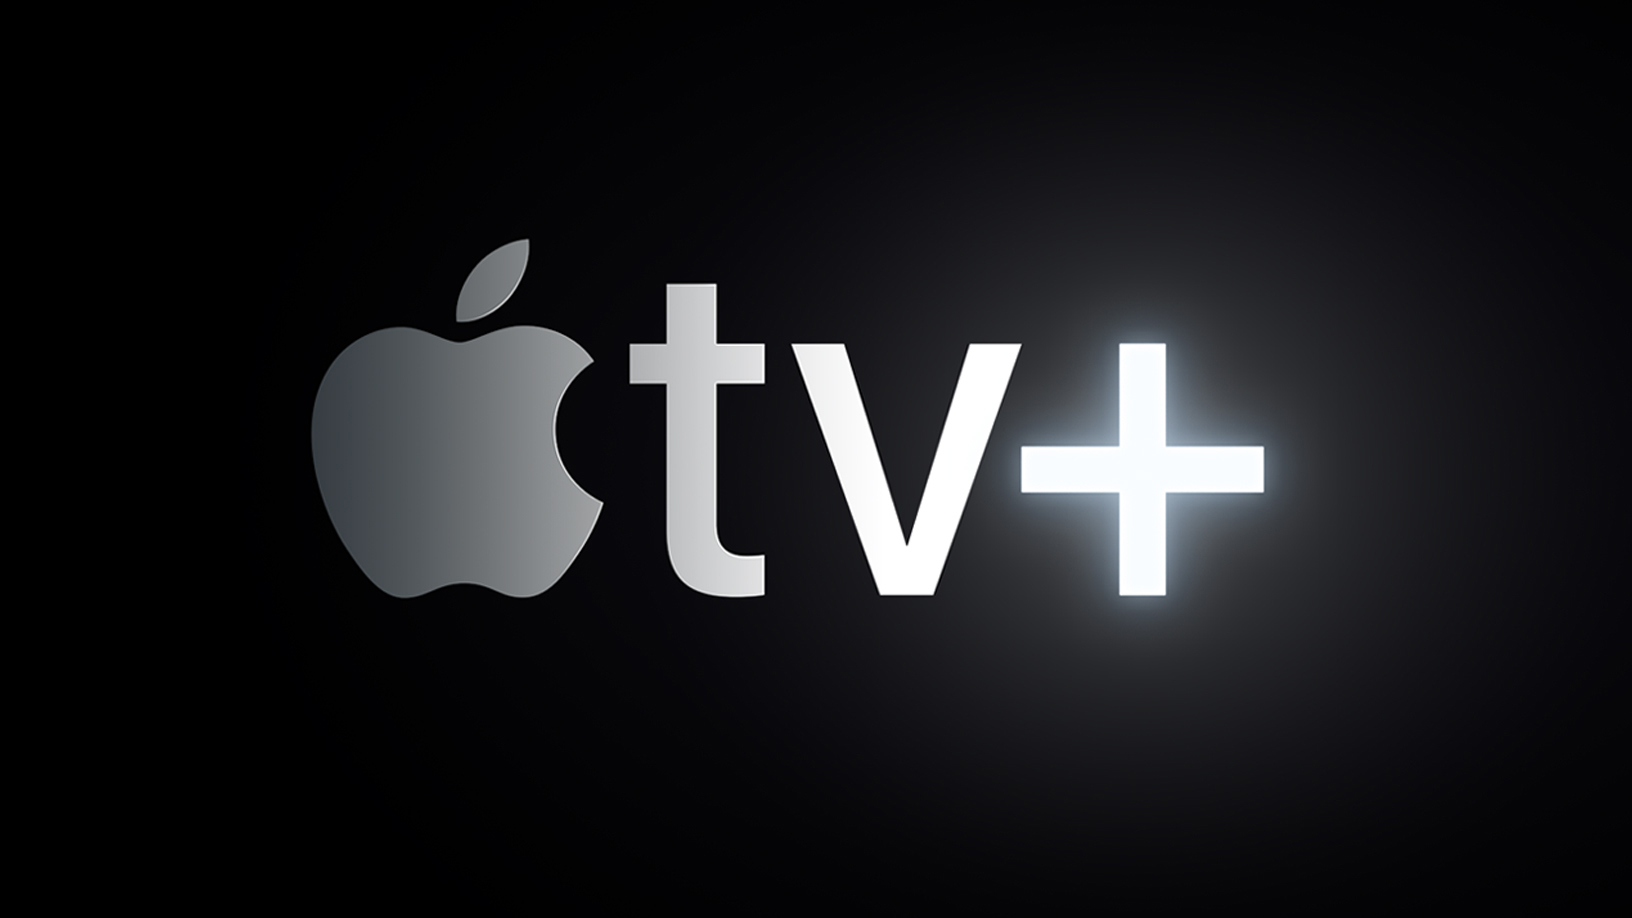 Apple TV Plus launches Nov. 1 for $4.99 a month